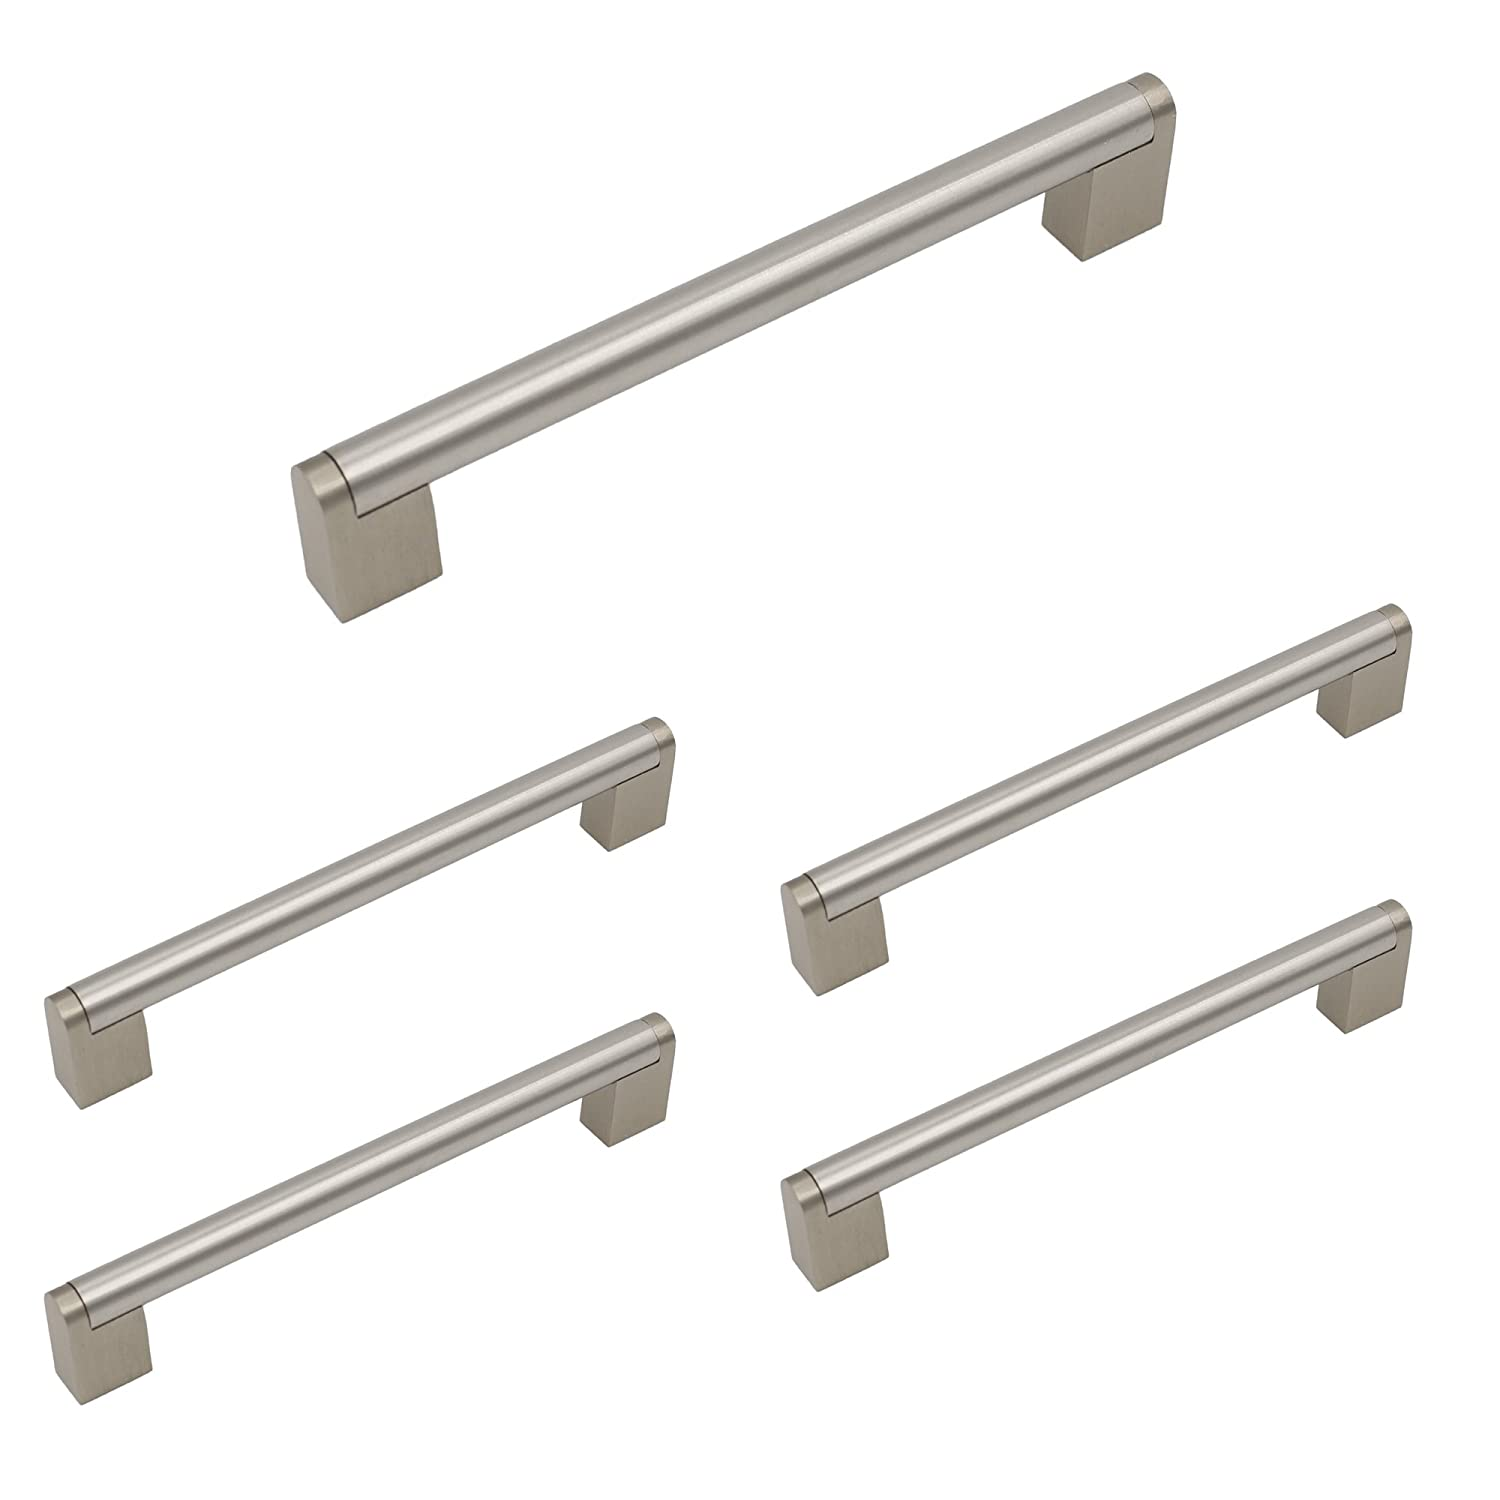 Homidy Kitchen Cabinet Pulls 160mm Hole Distance Brushed Nickel Cabinet Door Handles and Cabinet Knobs 5 Pack